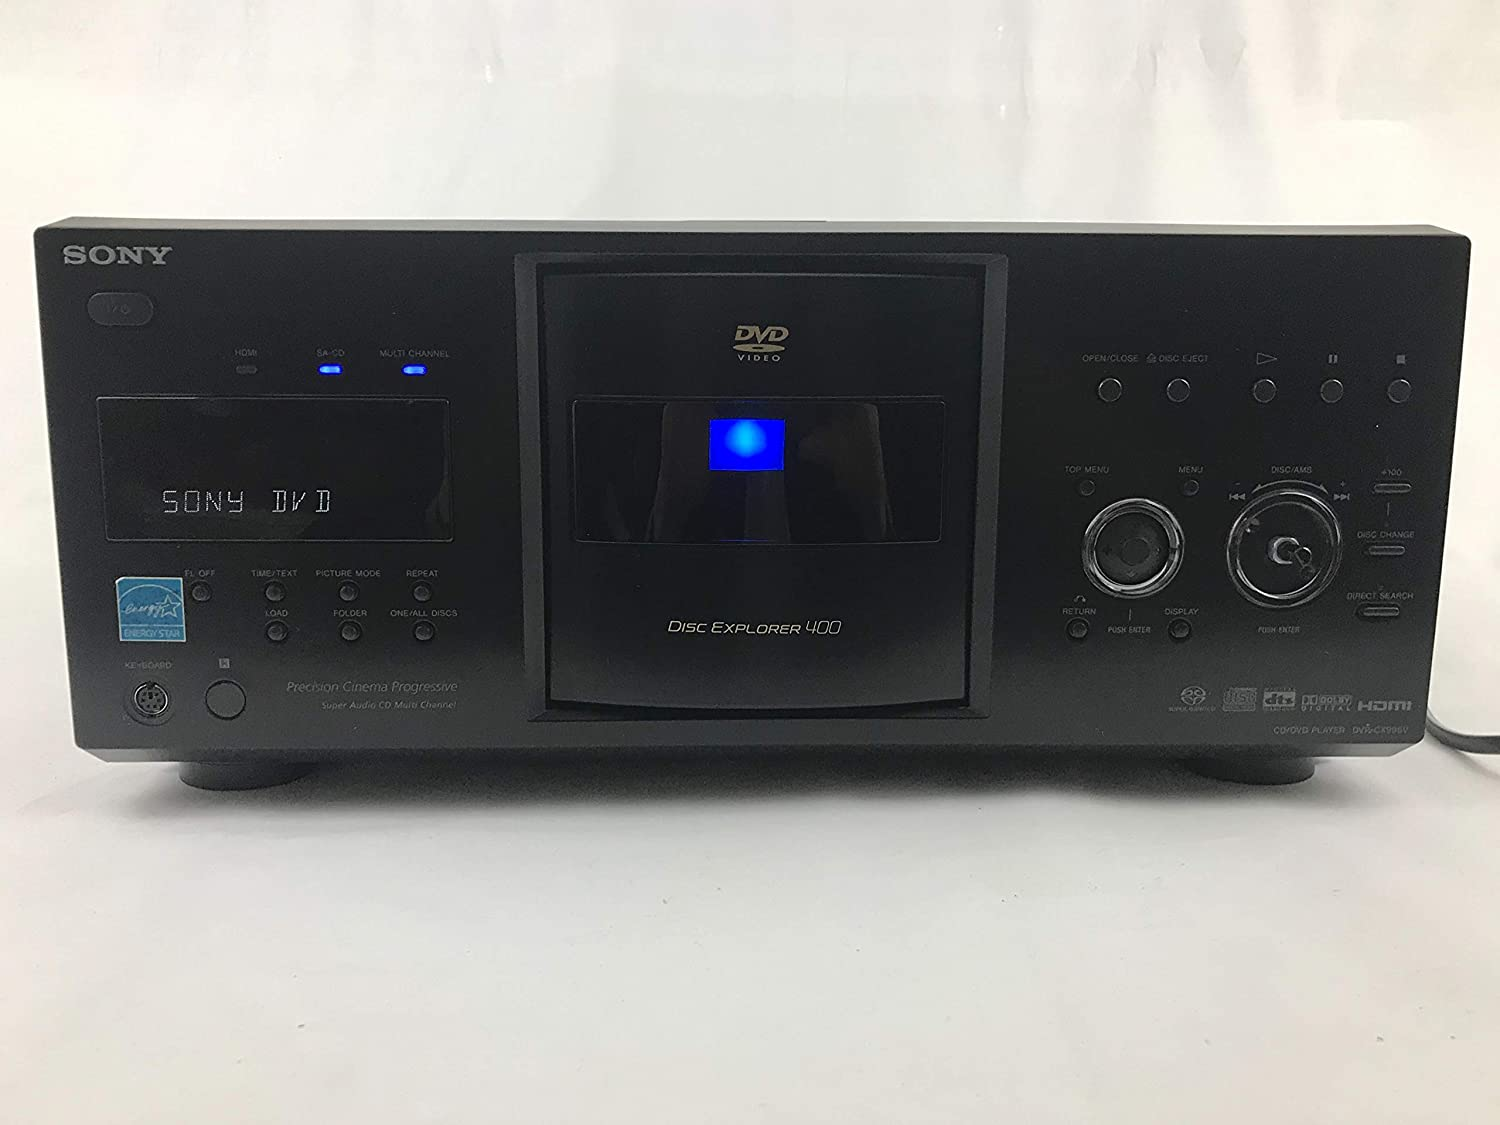 Sony DVPCX995V 400-Disc DVD Mega Changer/Player (2009 Model)